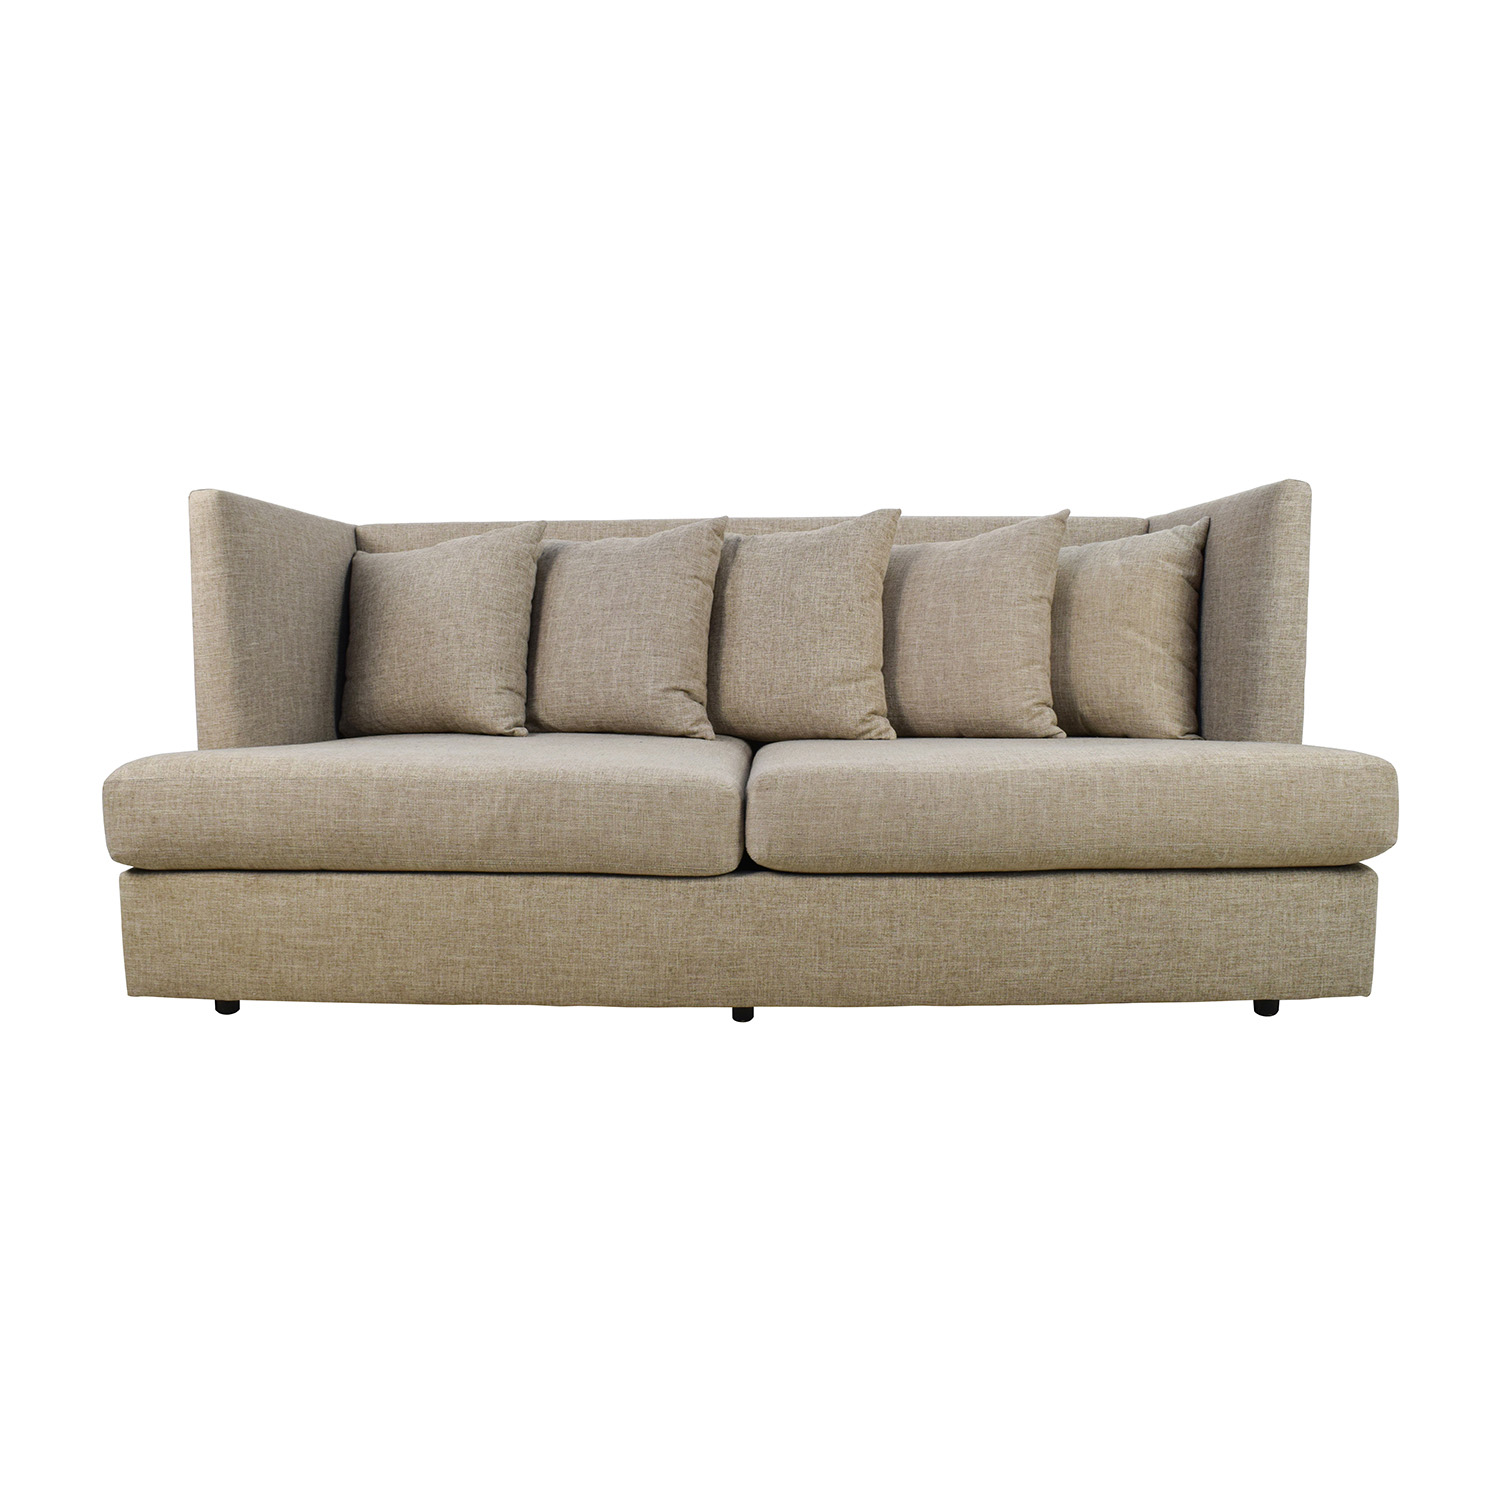 belgian shelter arm sofa cheap sofas online free shipping in beige linen thesofa